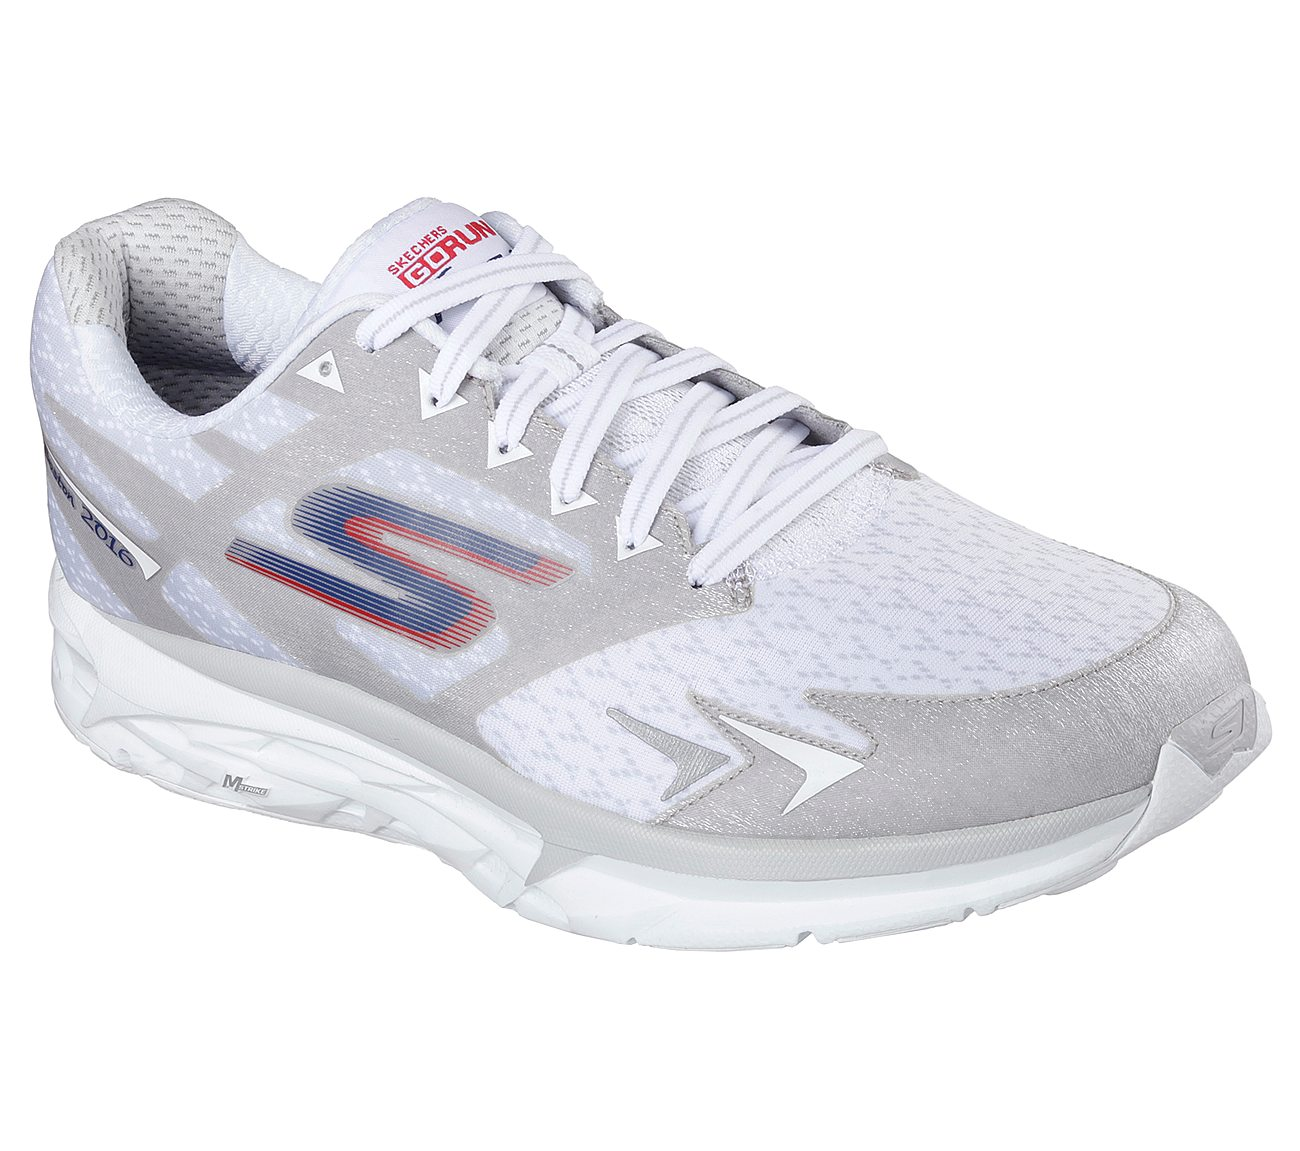 skechers shoes 2016